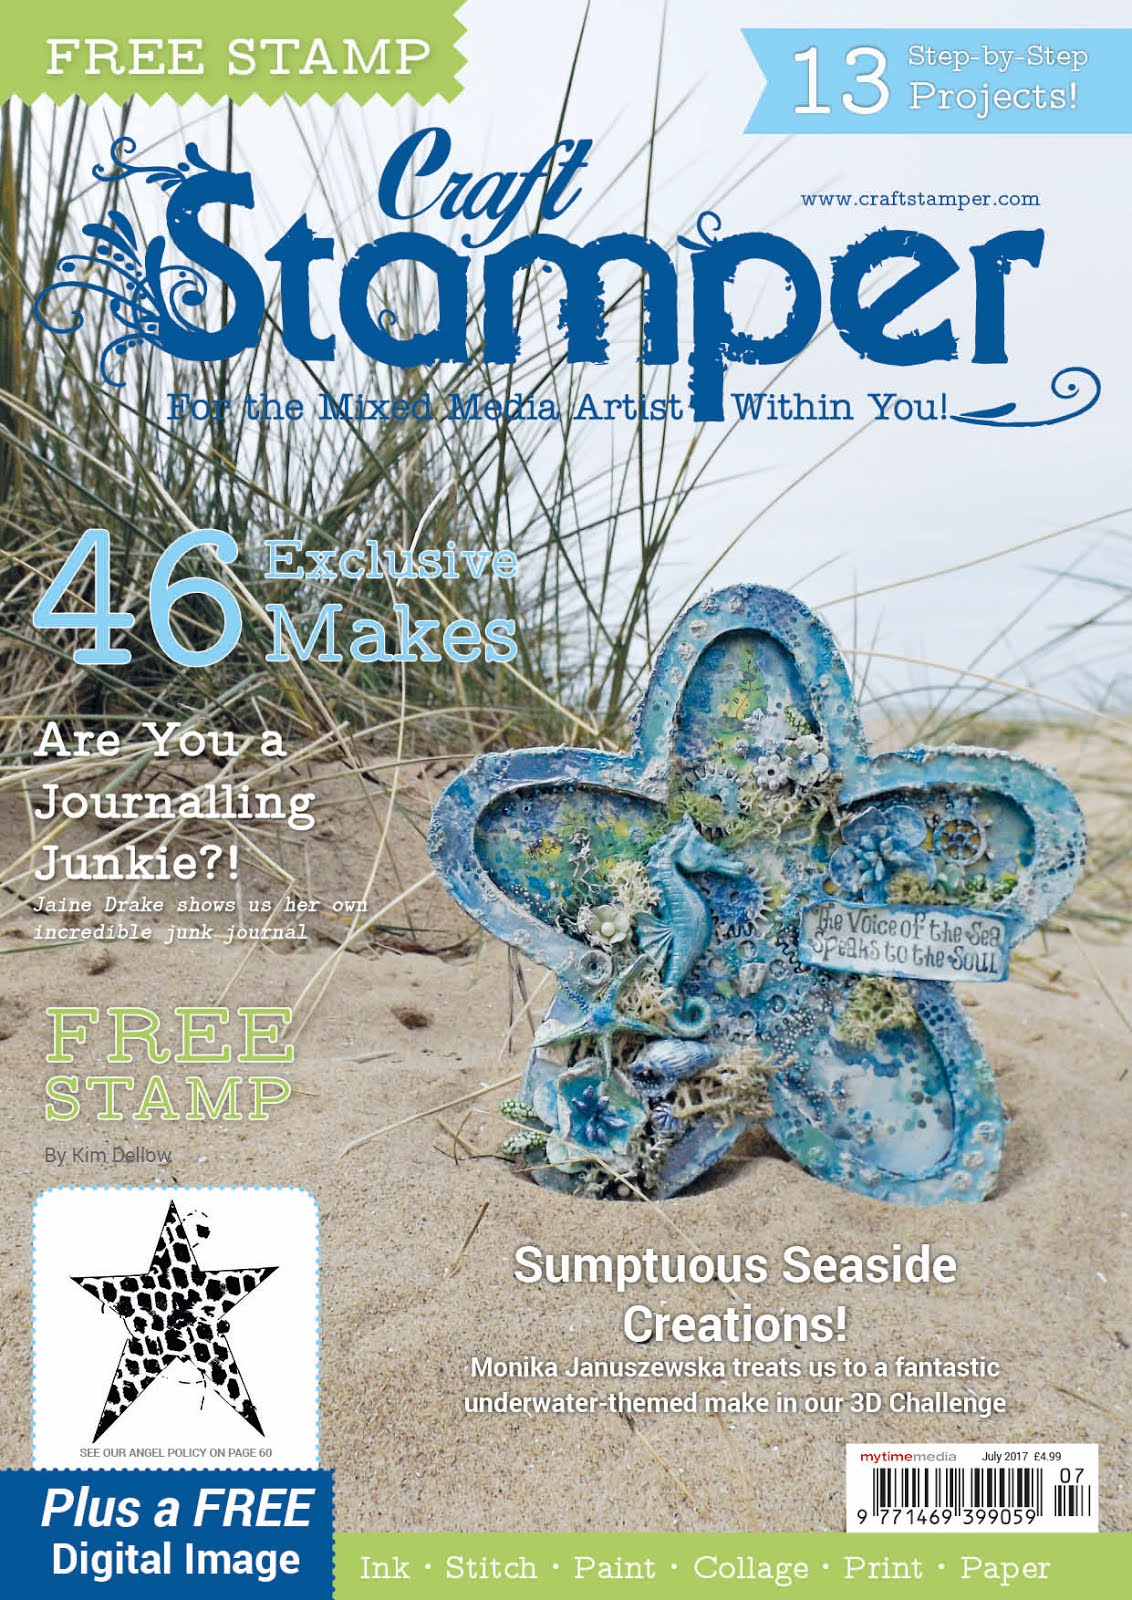 Proud to have been published in the July 17 issue of Craft Stamper magazine